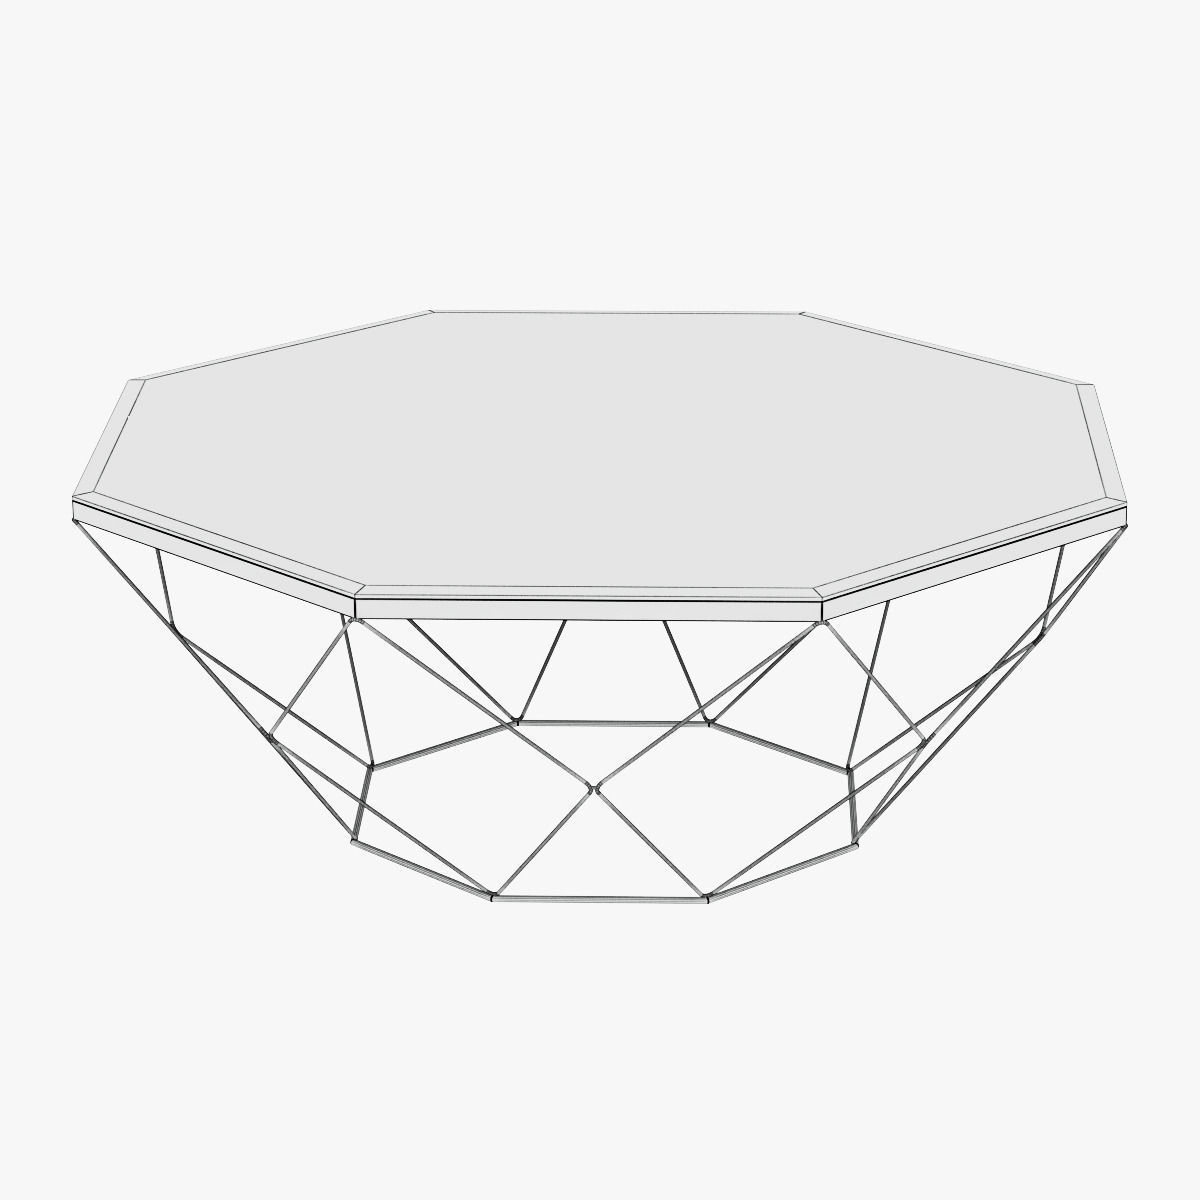 Geometric Antique Brass Coffee Table With Glass Top 3d Model Max Obj 3ds Fbx Mtl 4